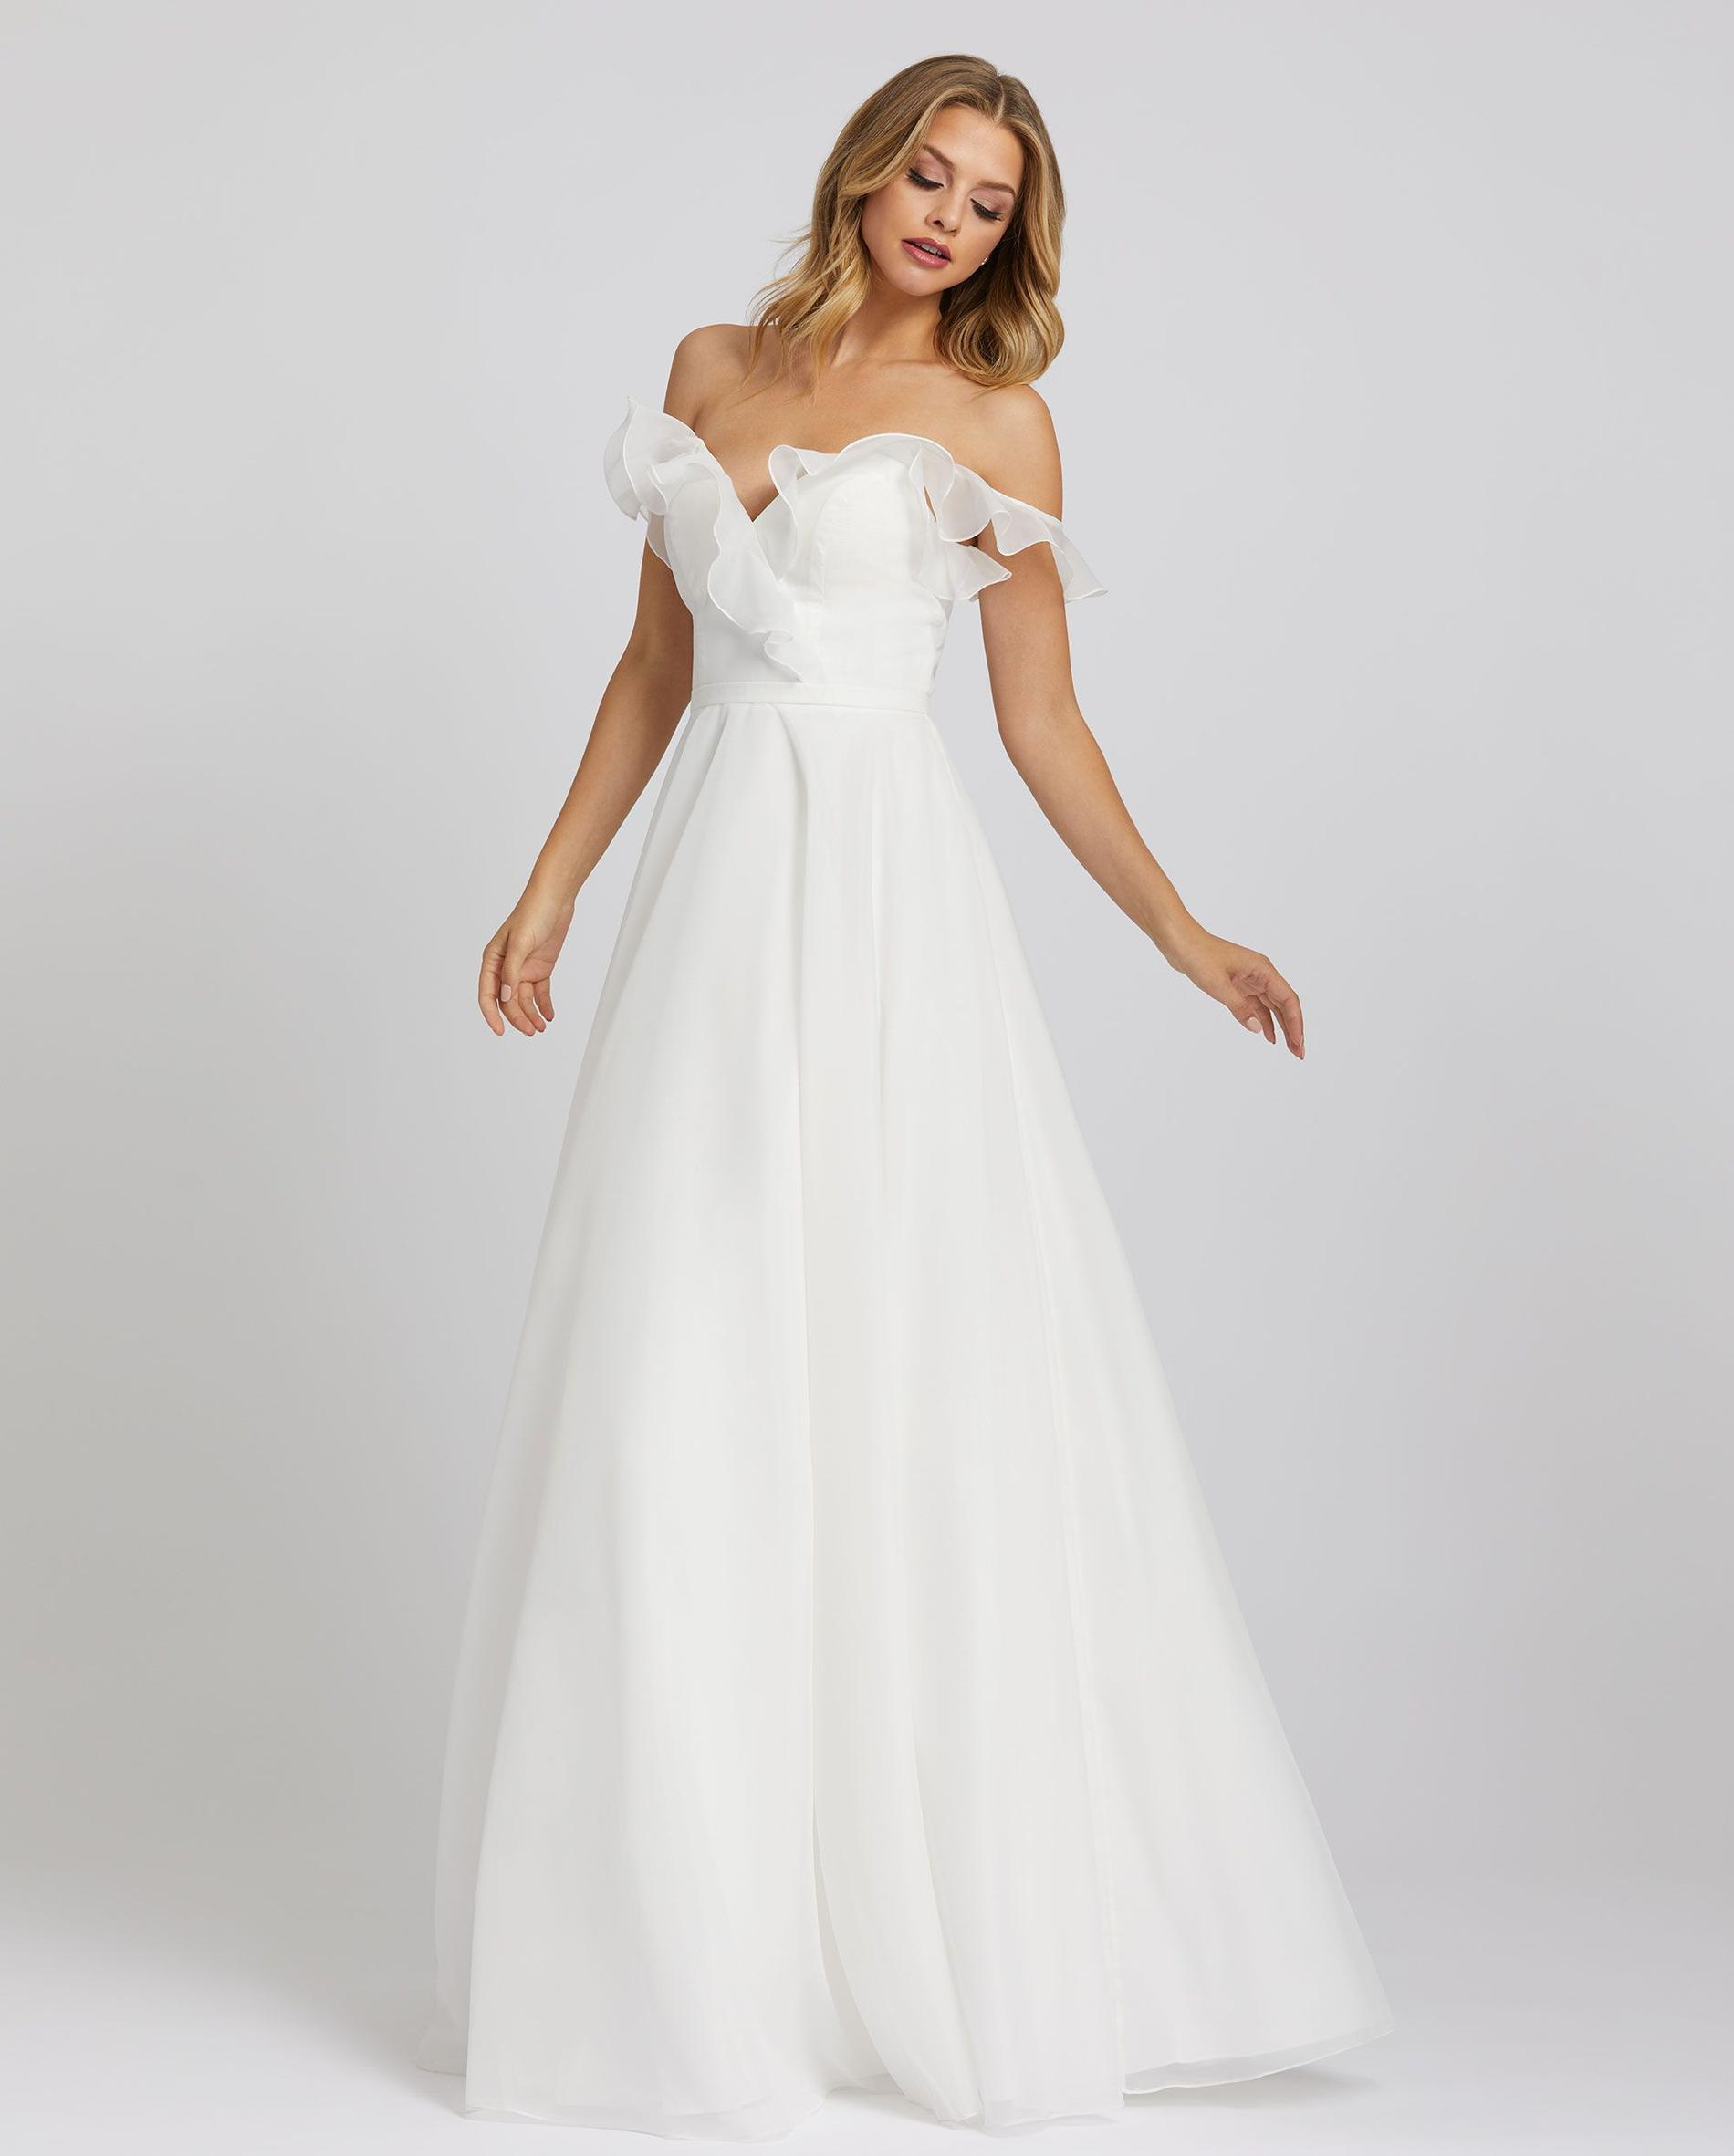 Style 48942 Mac Duggal White Size 14 Tall Height Ball gown on Queenly